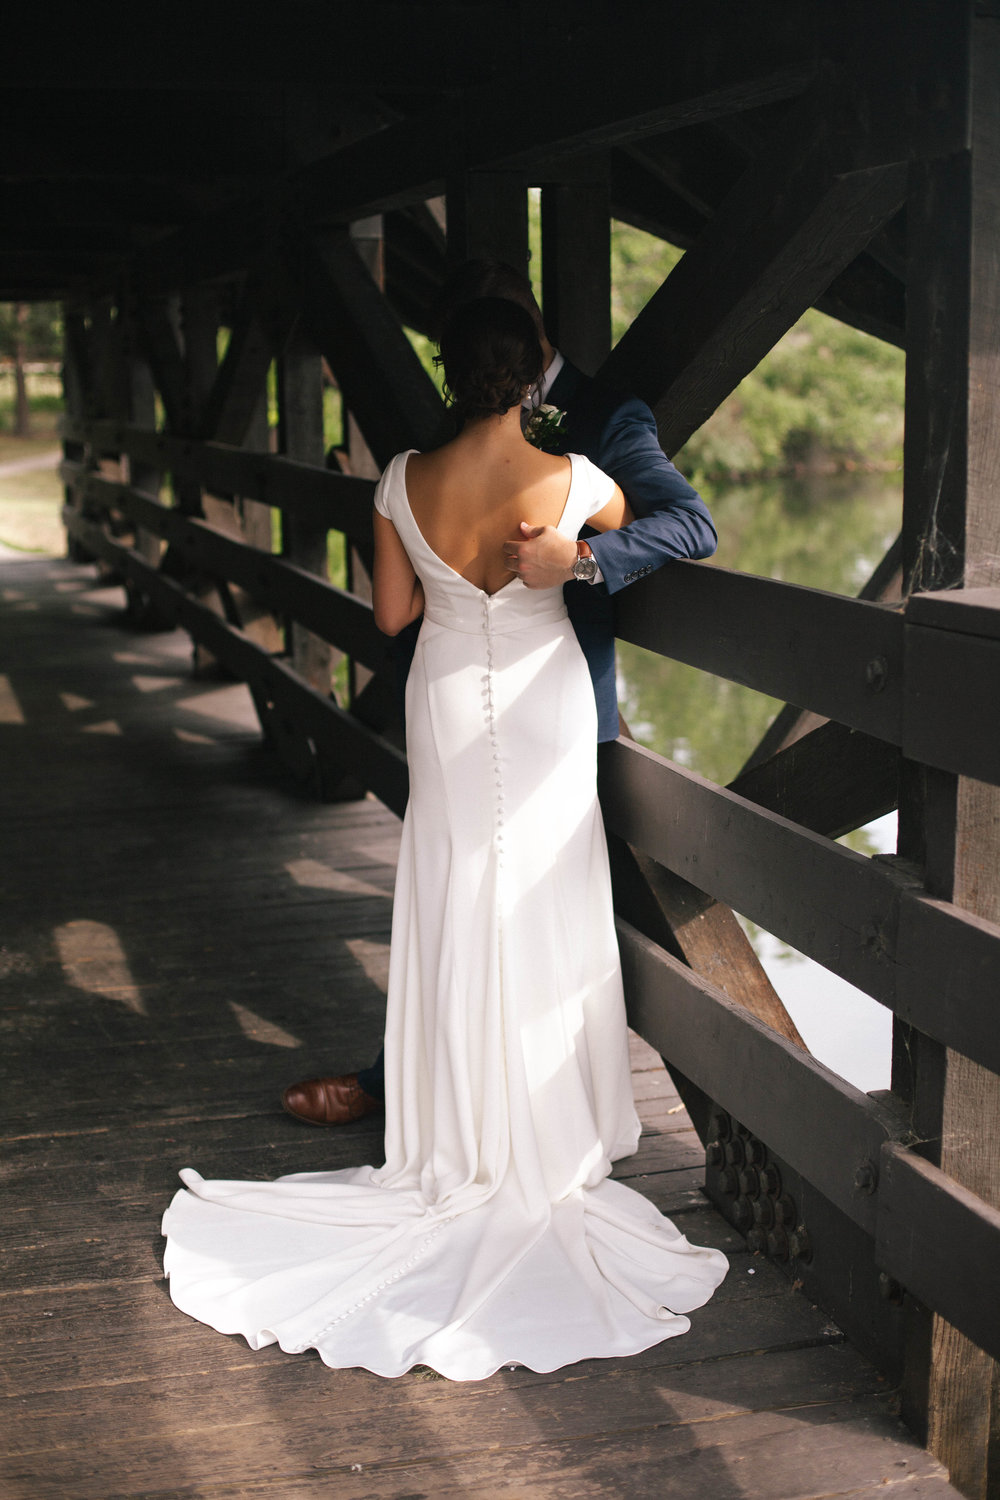 RachelJoshColoradoWedding_MadeiraCreativePhotography-33.jpg